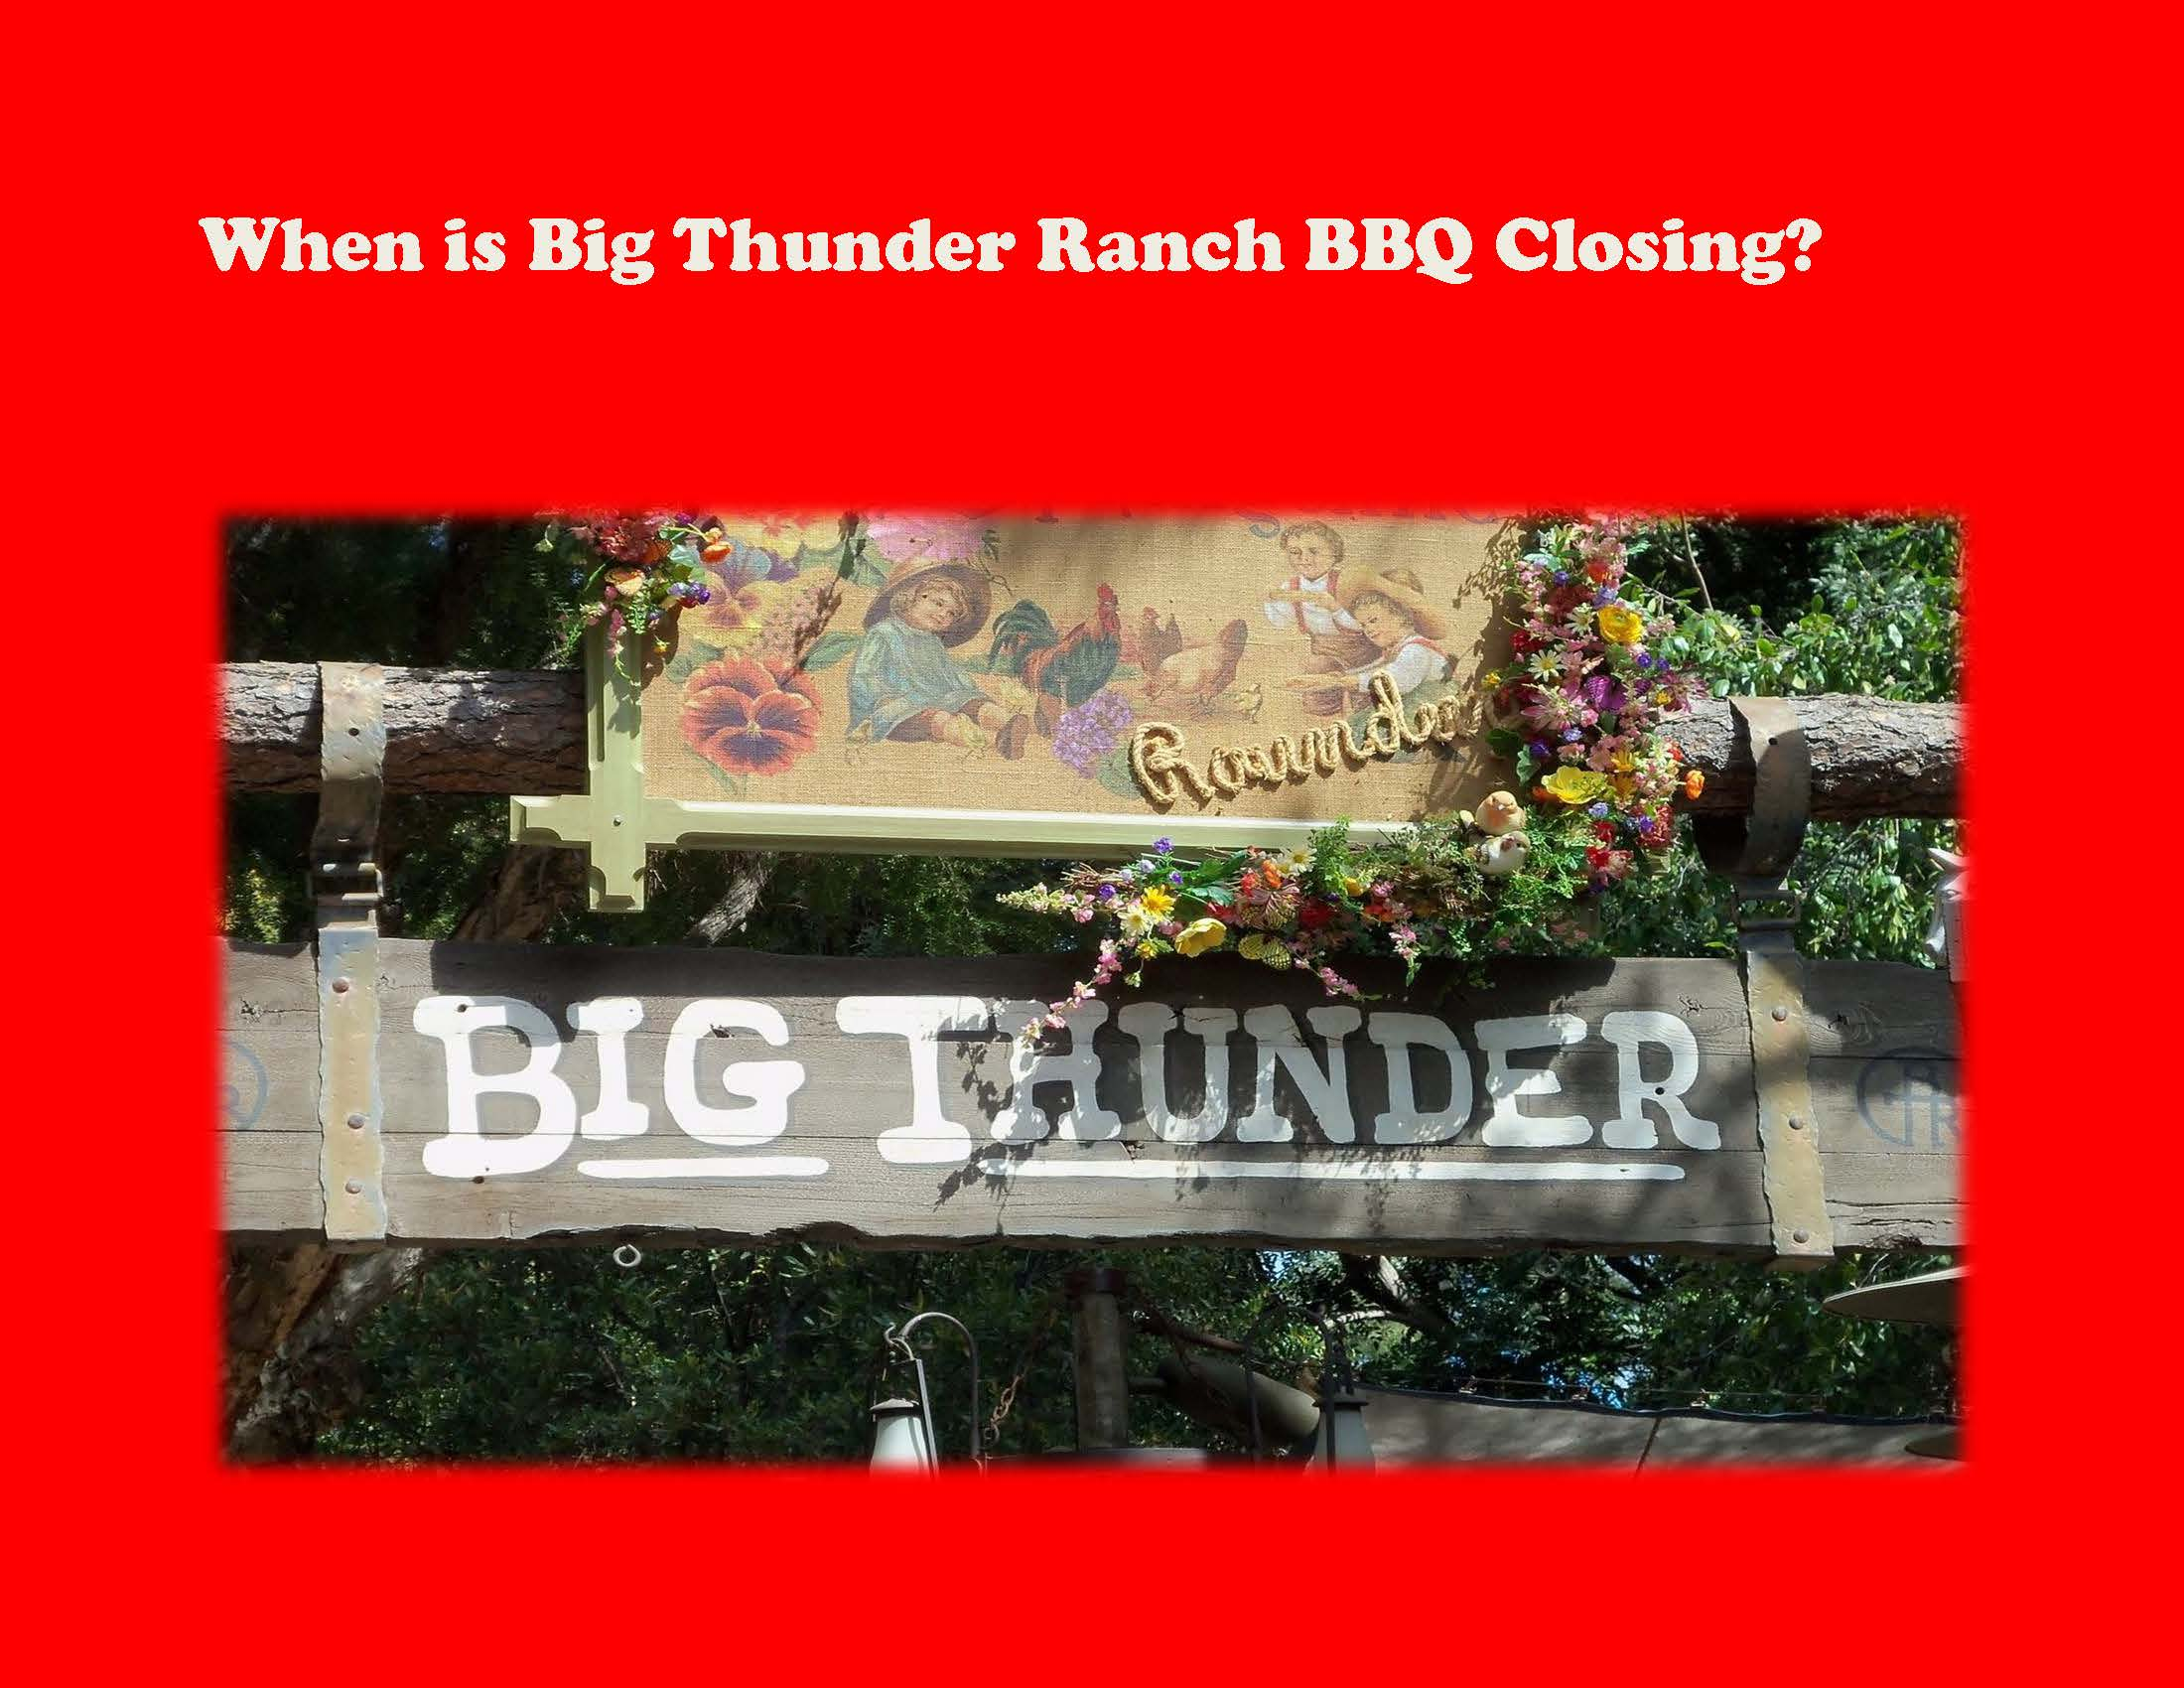 When does Big Thunder Ranch BBQ Close?